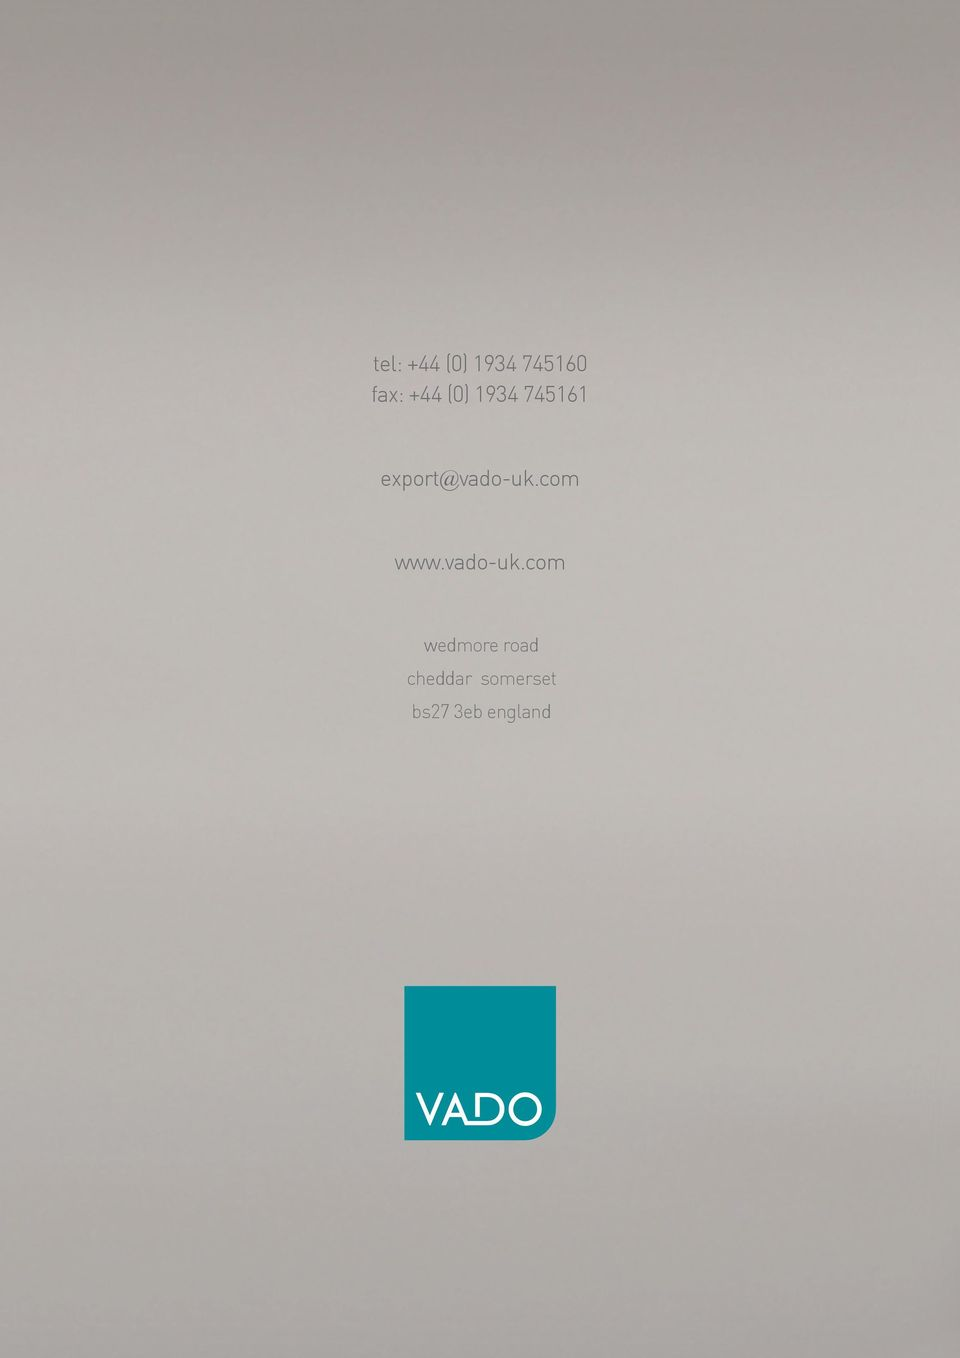 export@vado-uk.